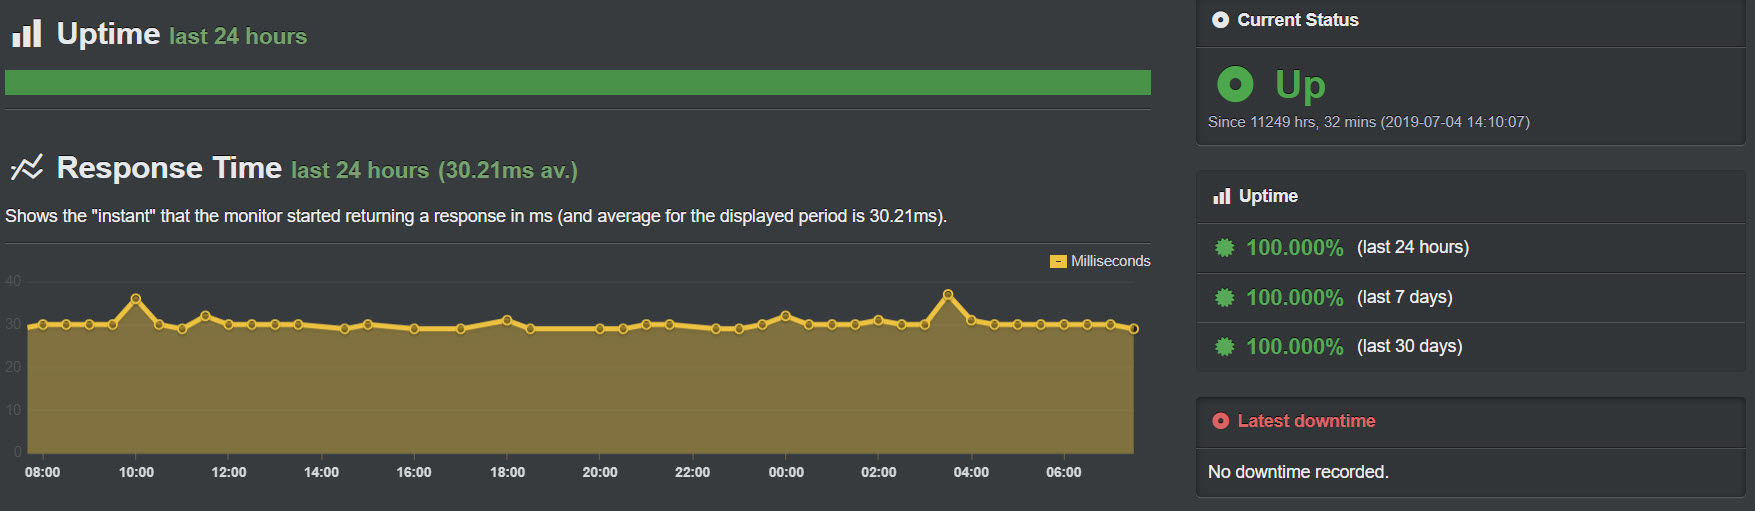 mgtcluster uptime